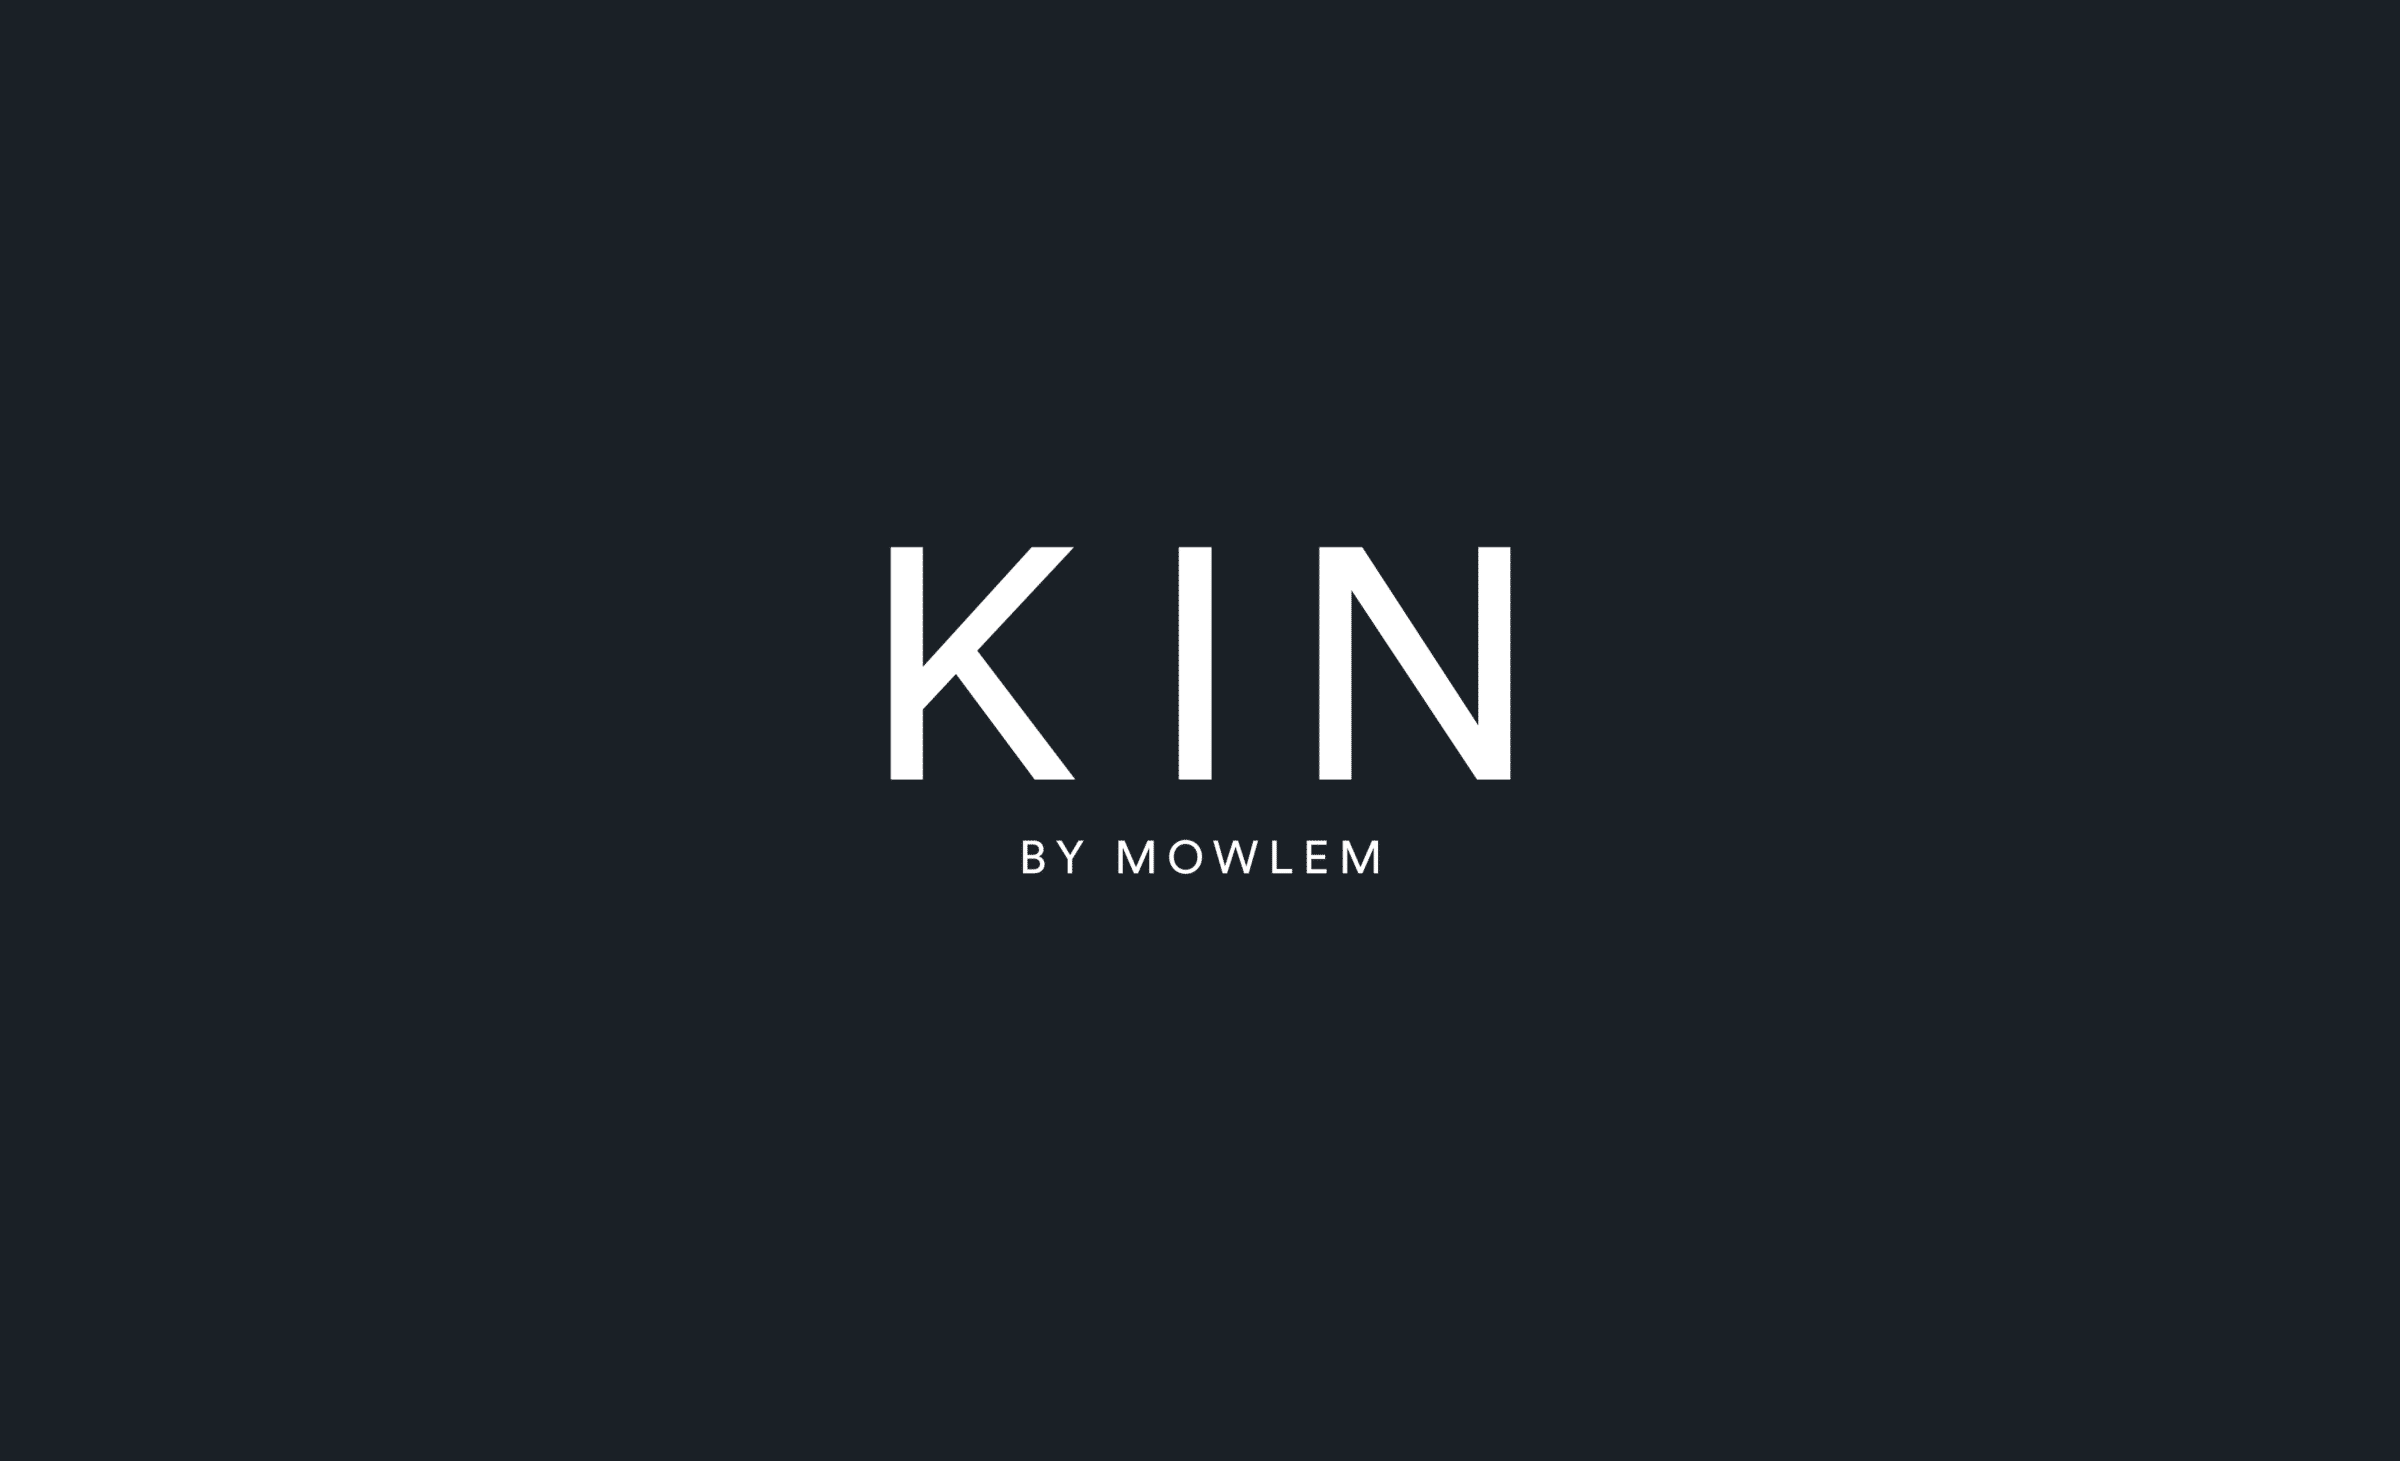 Logo design for Kin by Mowlem